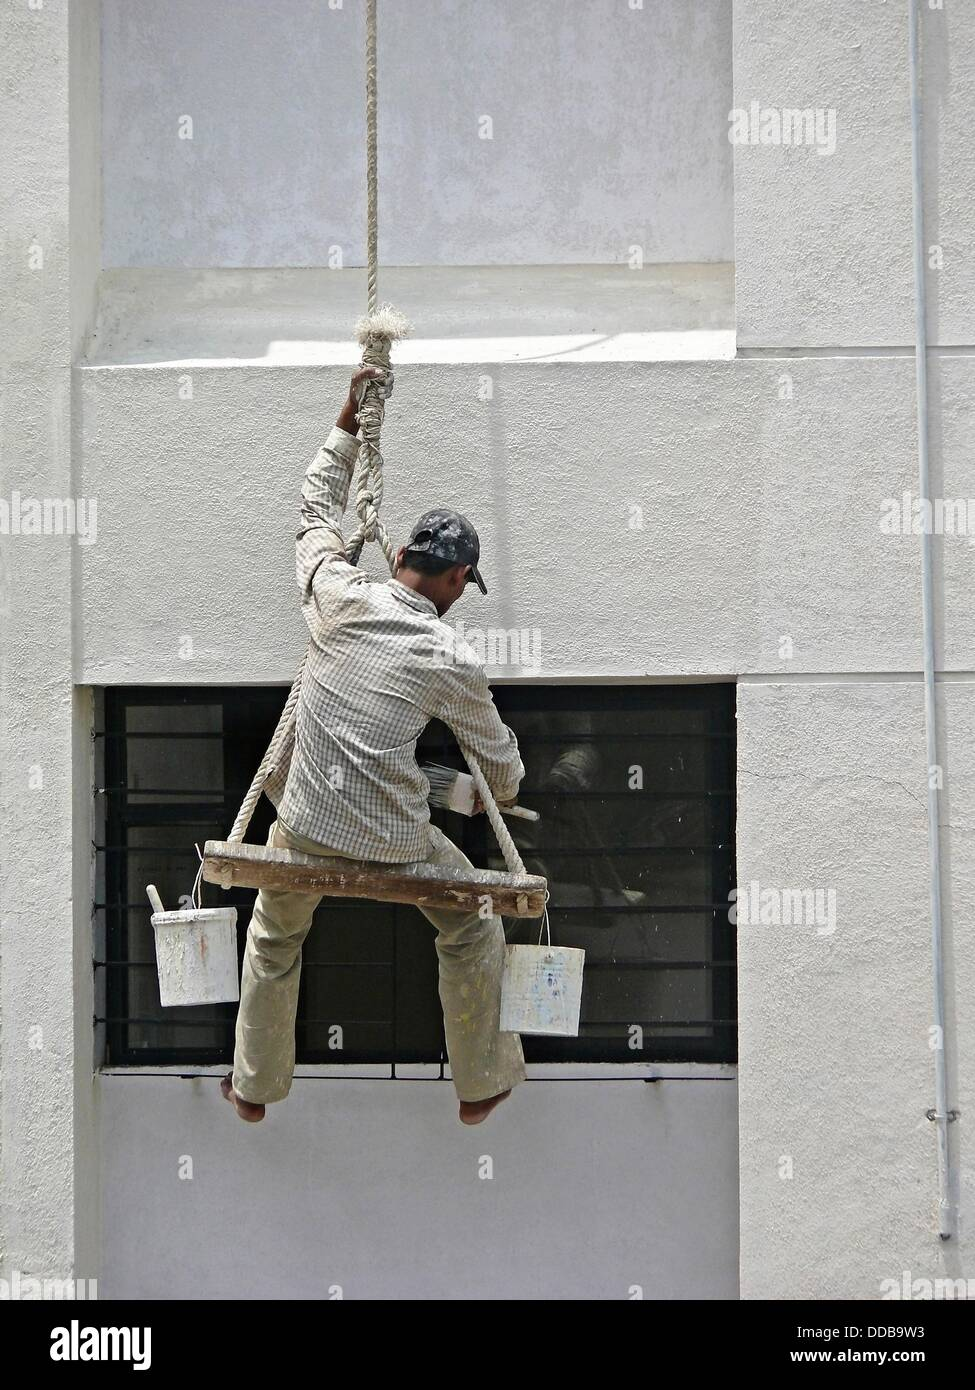 A Painter Is Seating On A Cradle For Building 180 S Exterior